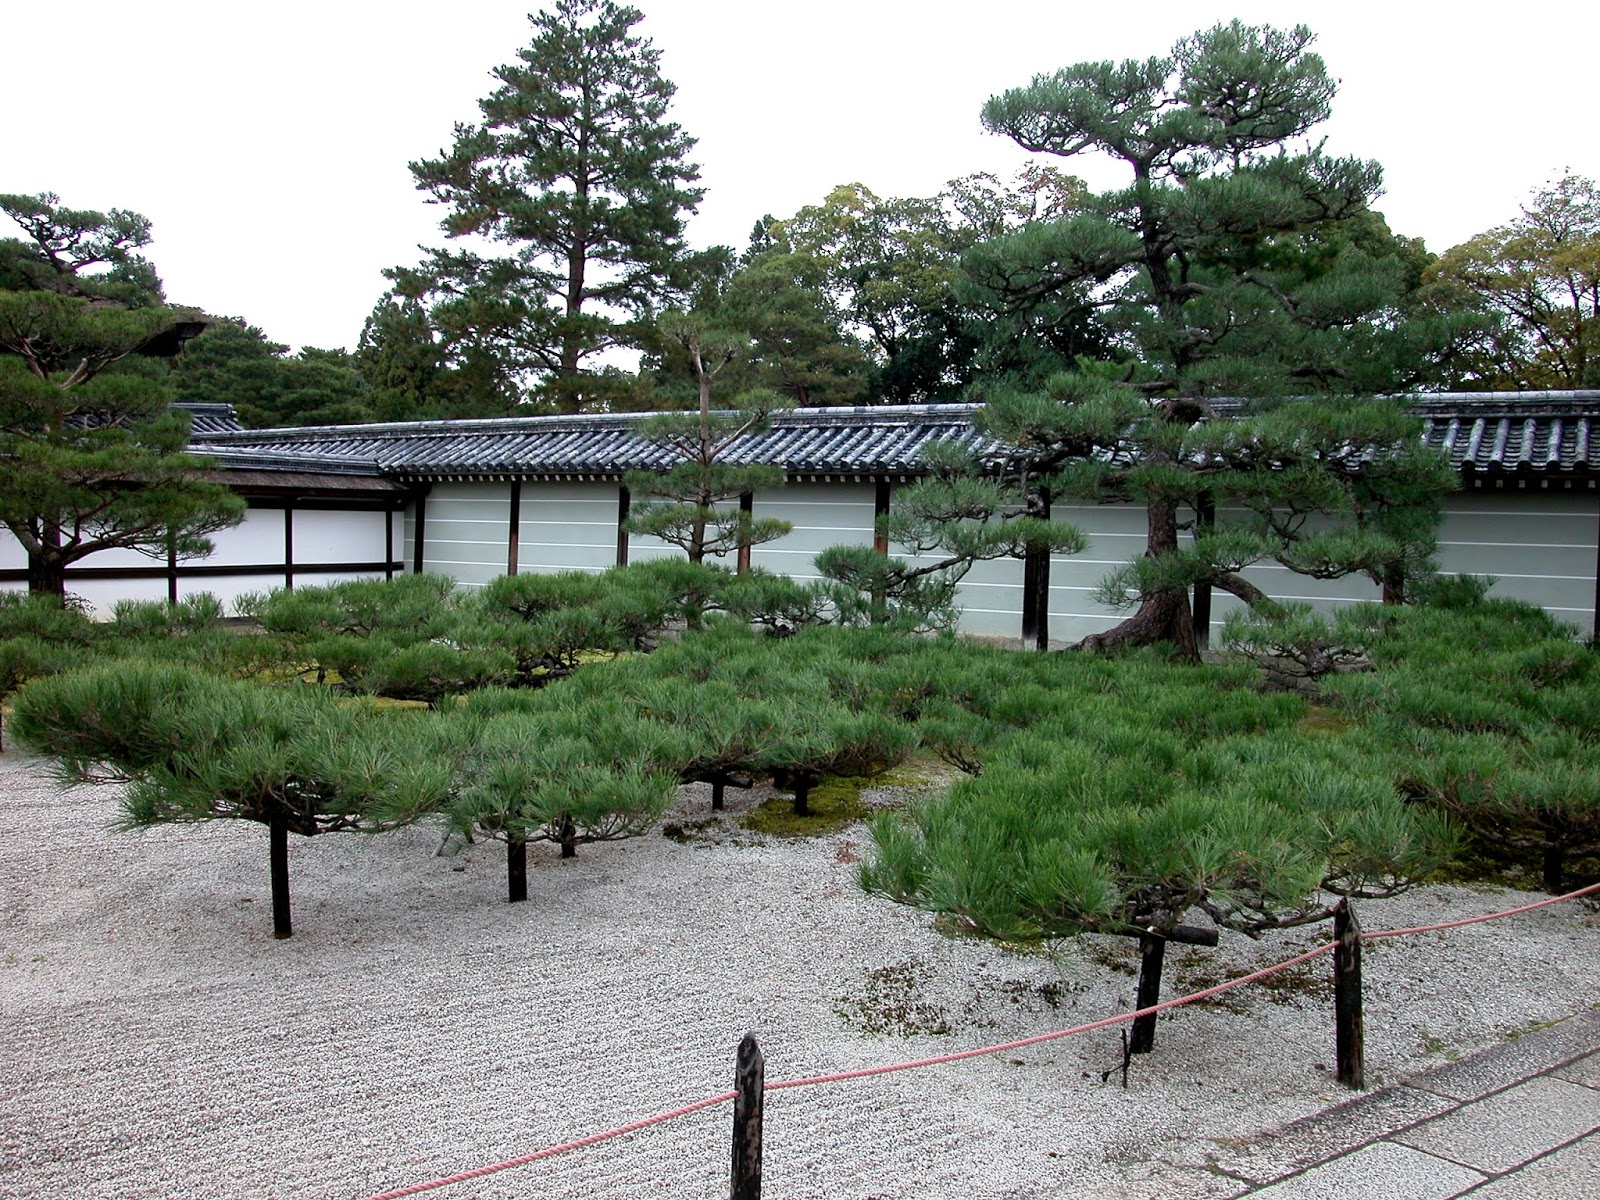 Robert Ketchell S Blog Pines In The Japanese Garden